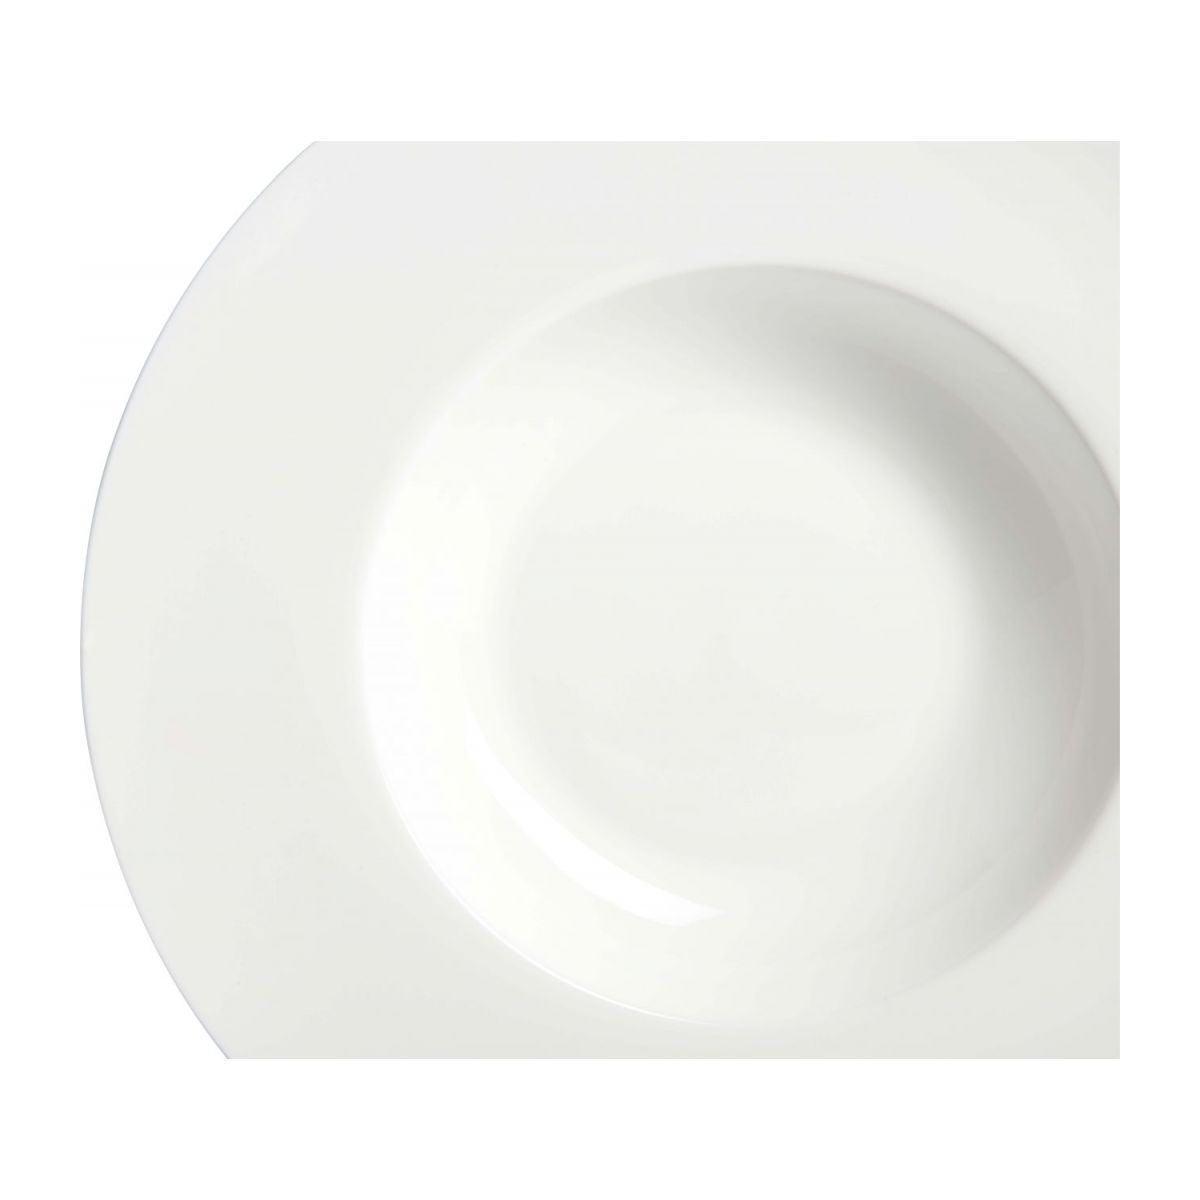 Plate for risotto in porcelain n°4